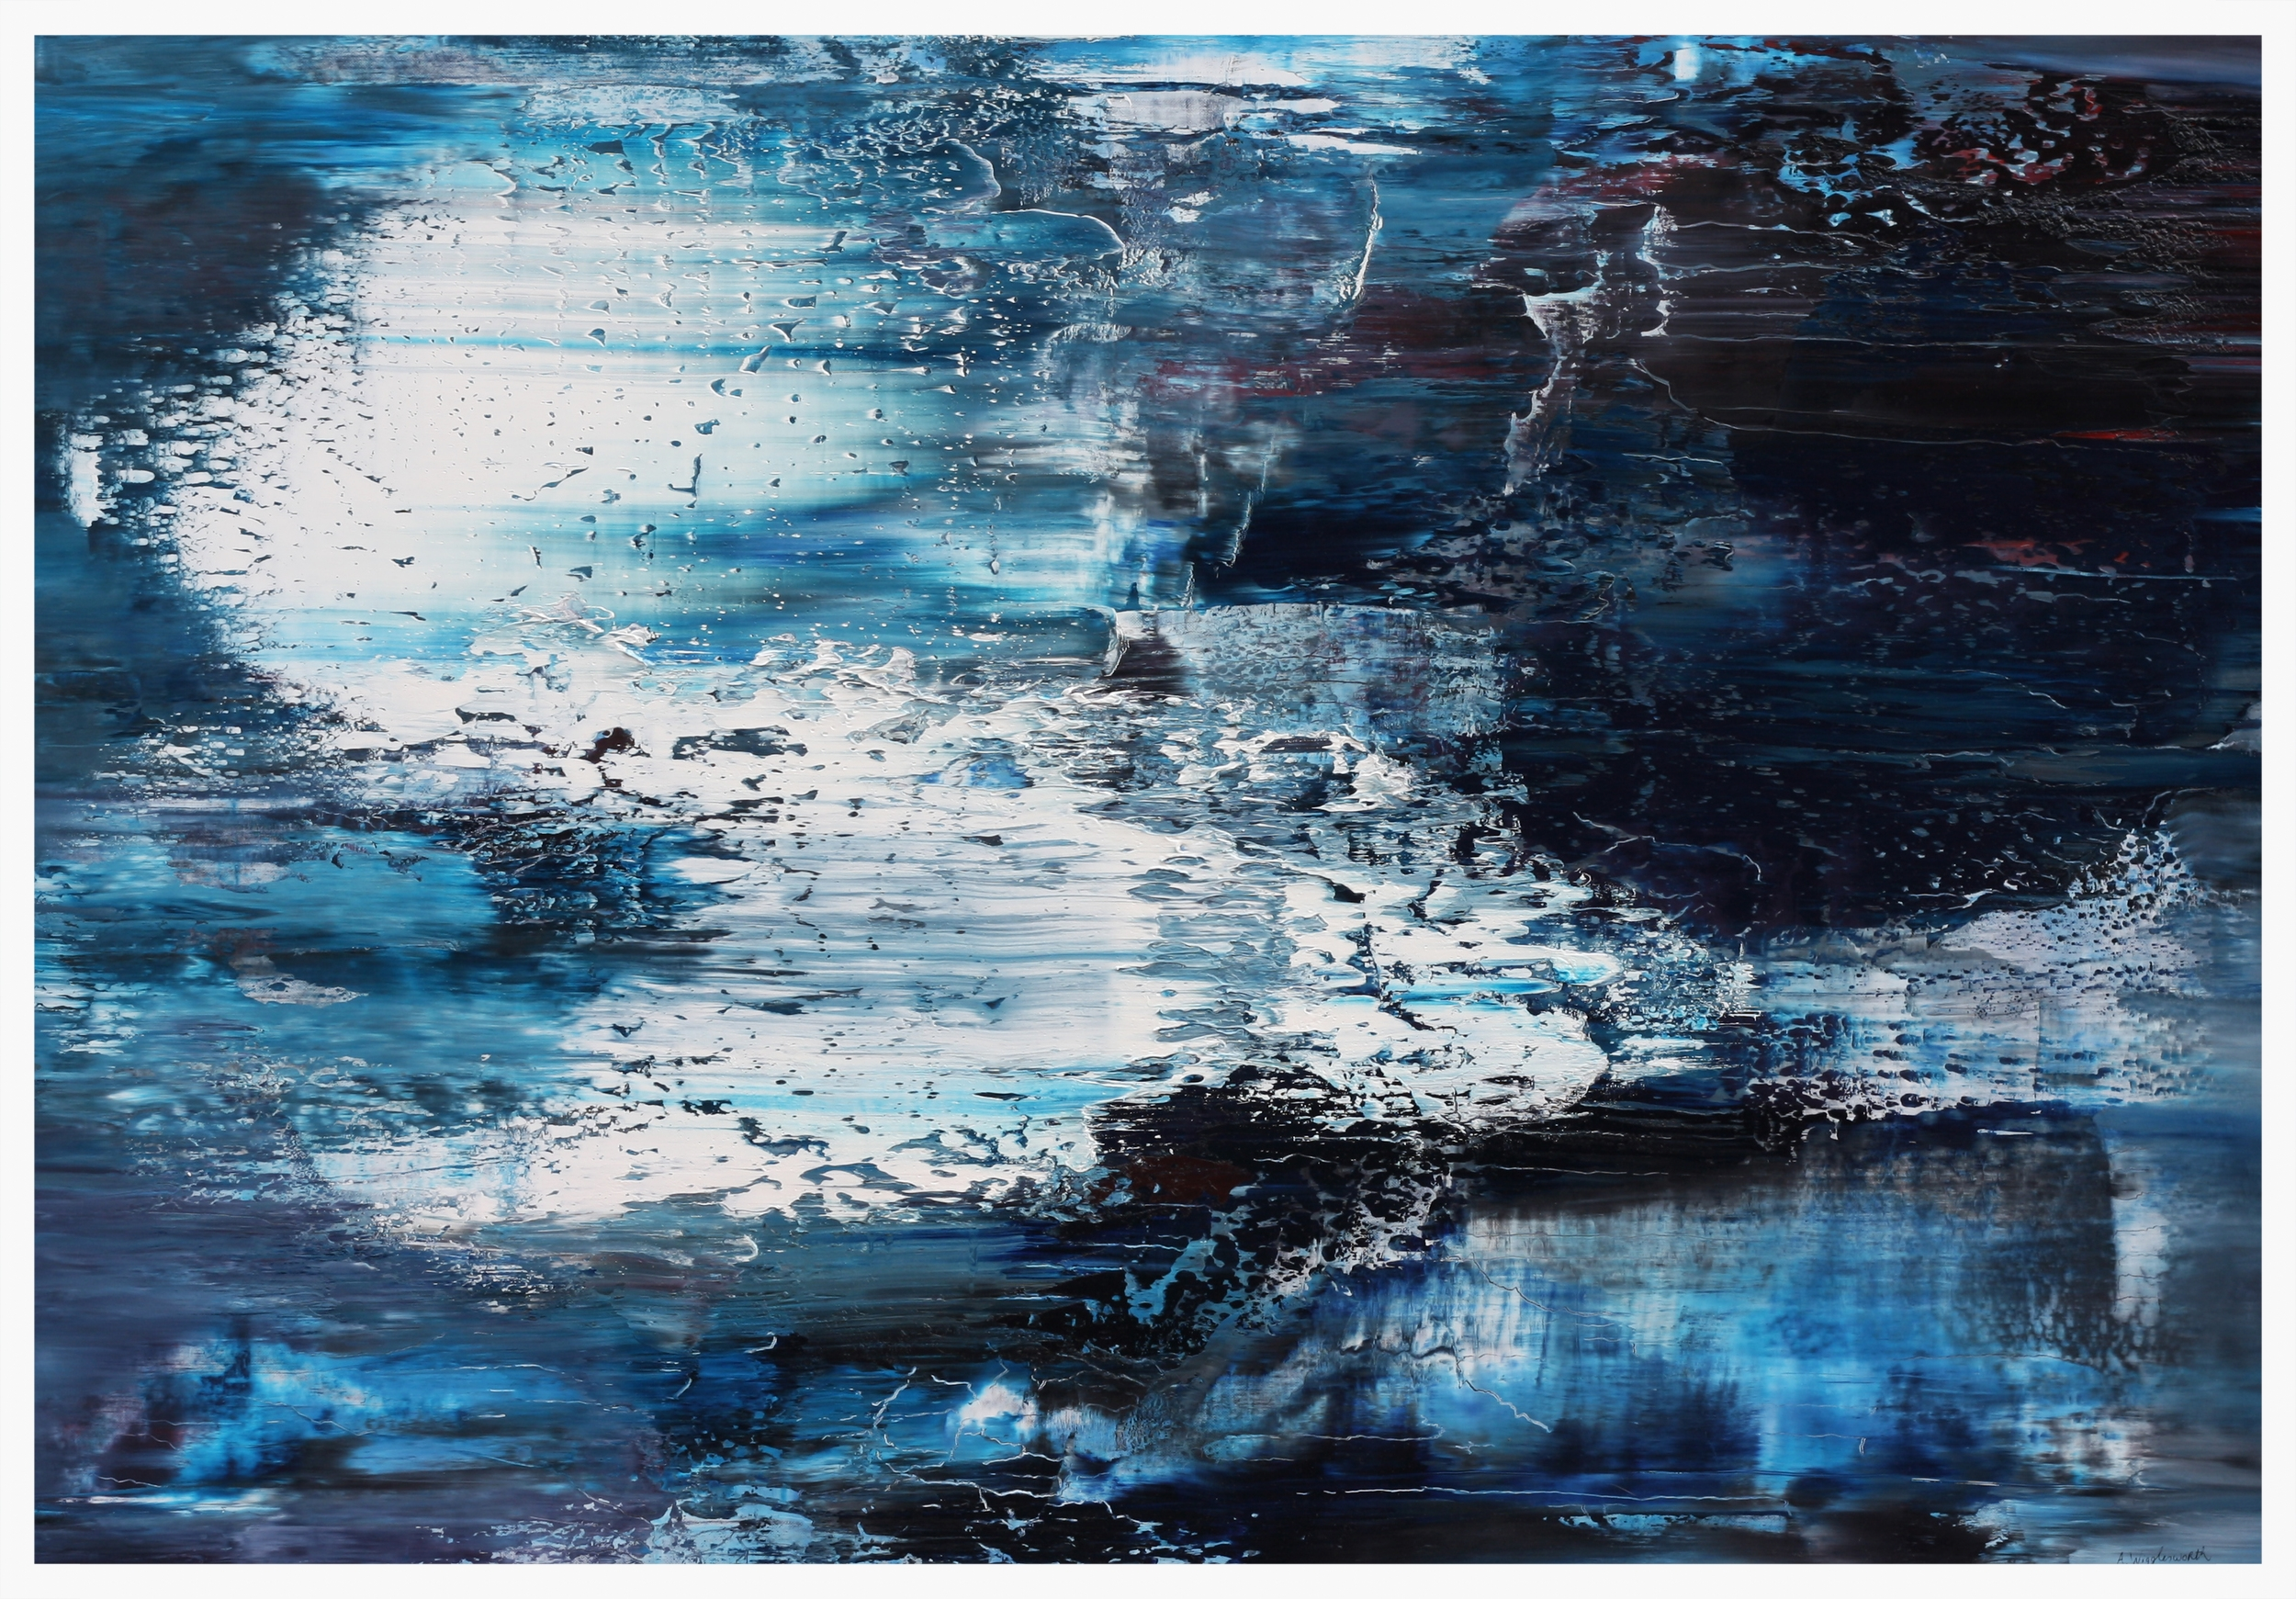 Out of The Blue,   Oil on canvas, 70 cm x 100 cm, The Chimera Gallery